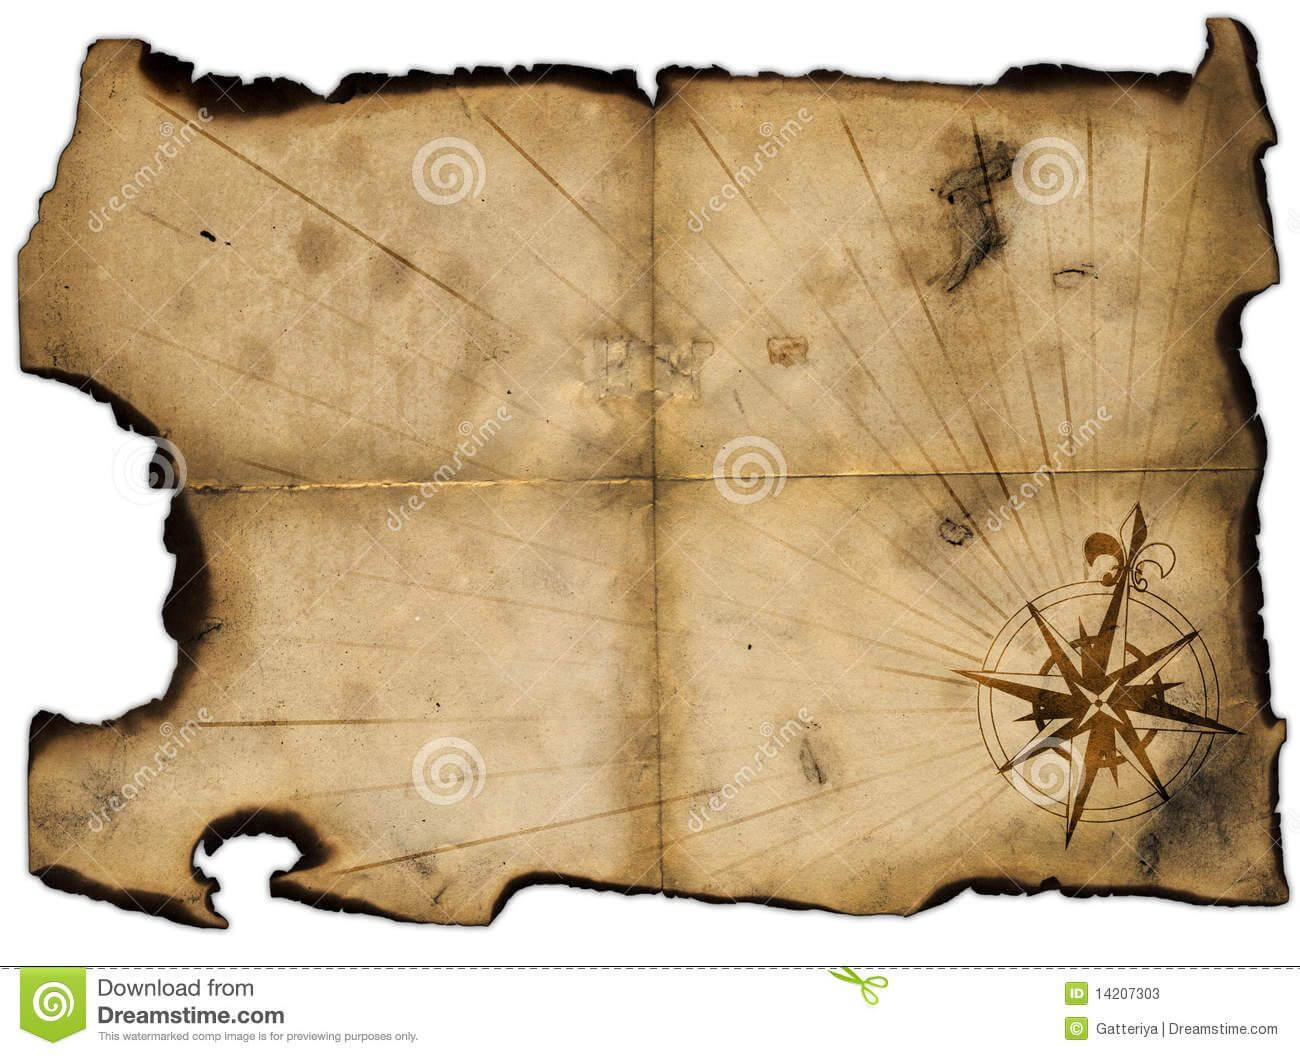 Blank Treasure Map Template - Videotekaalex.tk | Pirate Maps Inside Blank Pirate Map Template